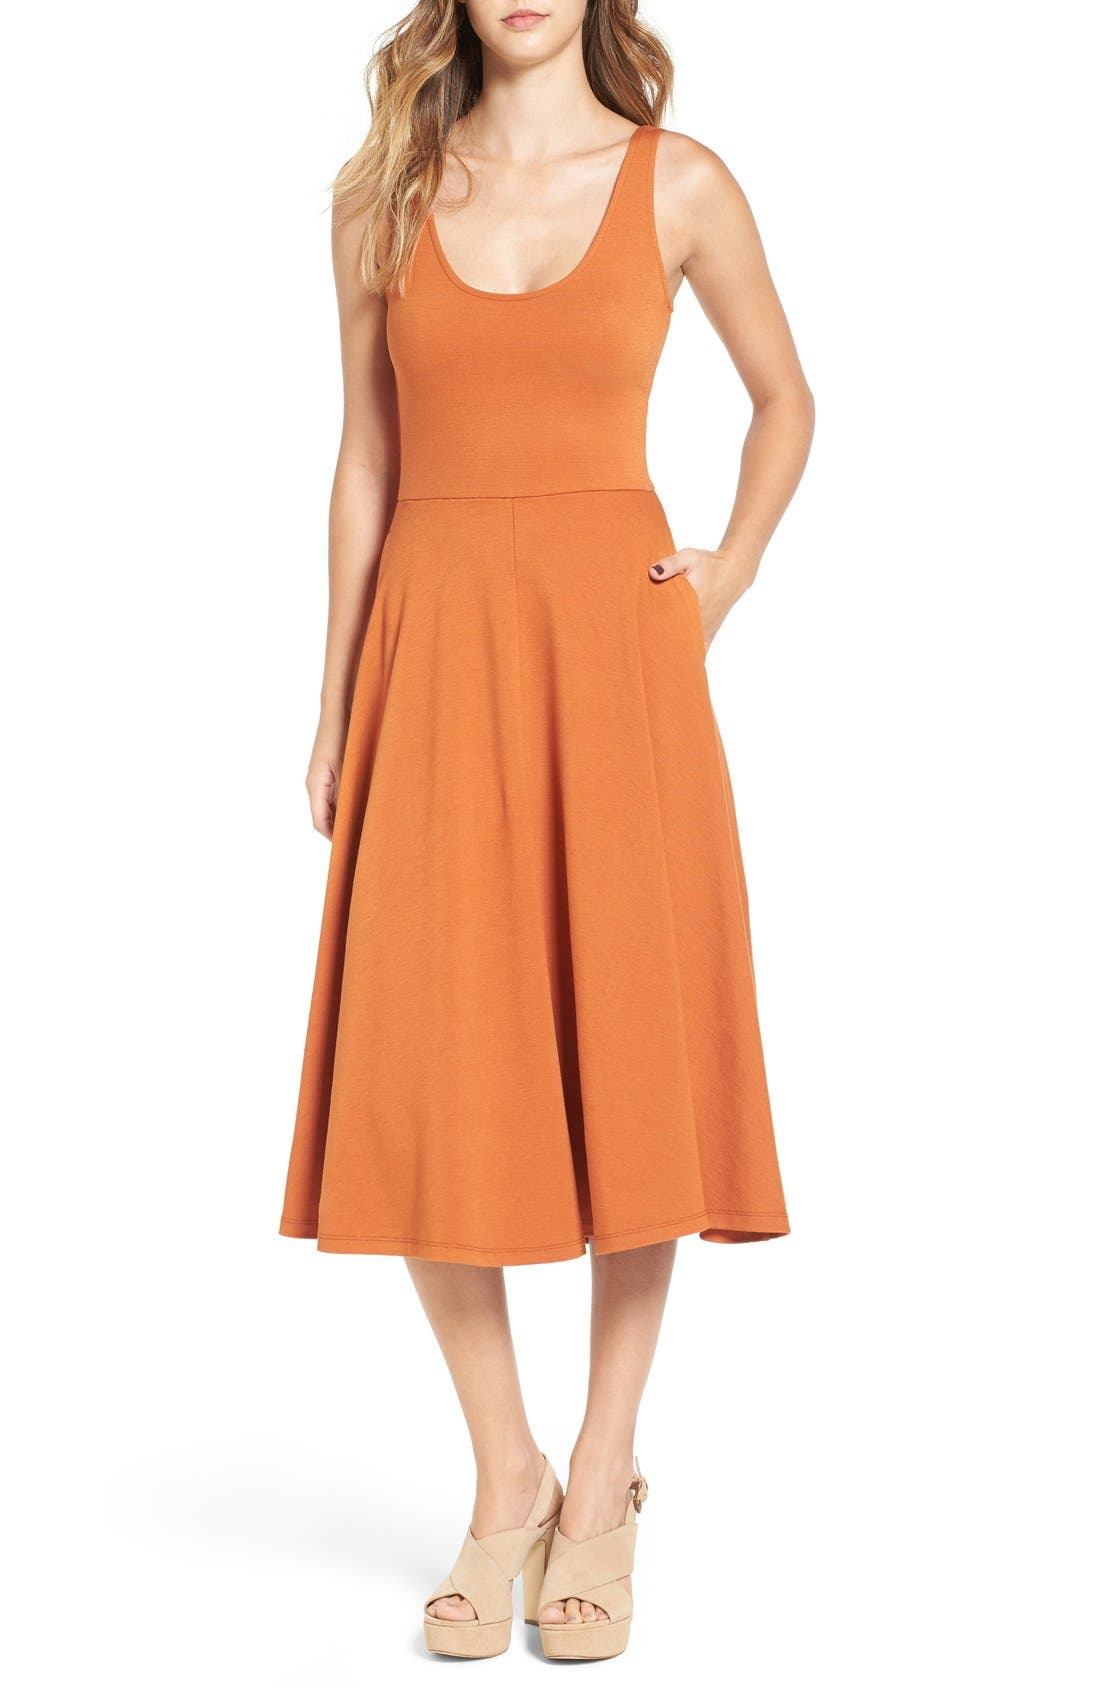 Alternate Image 1 Selected - Leith Stretch Knit Midi Dress